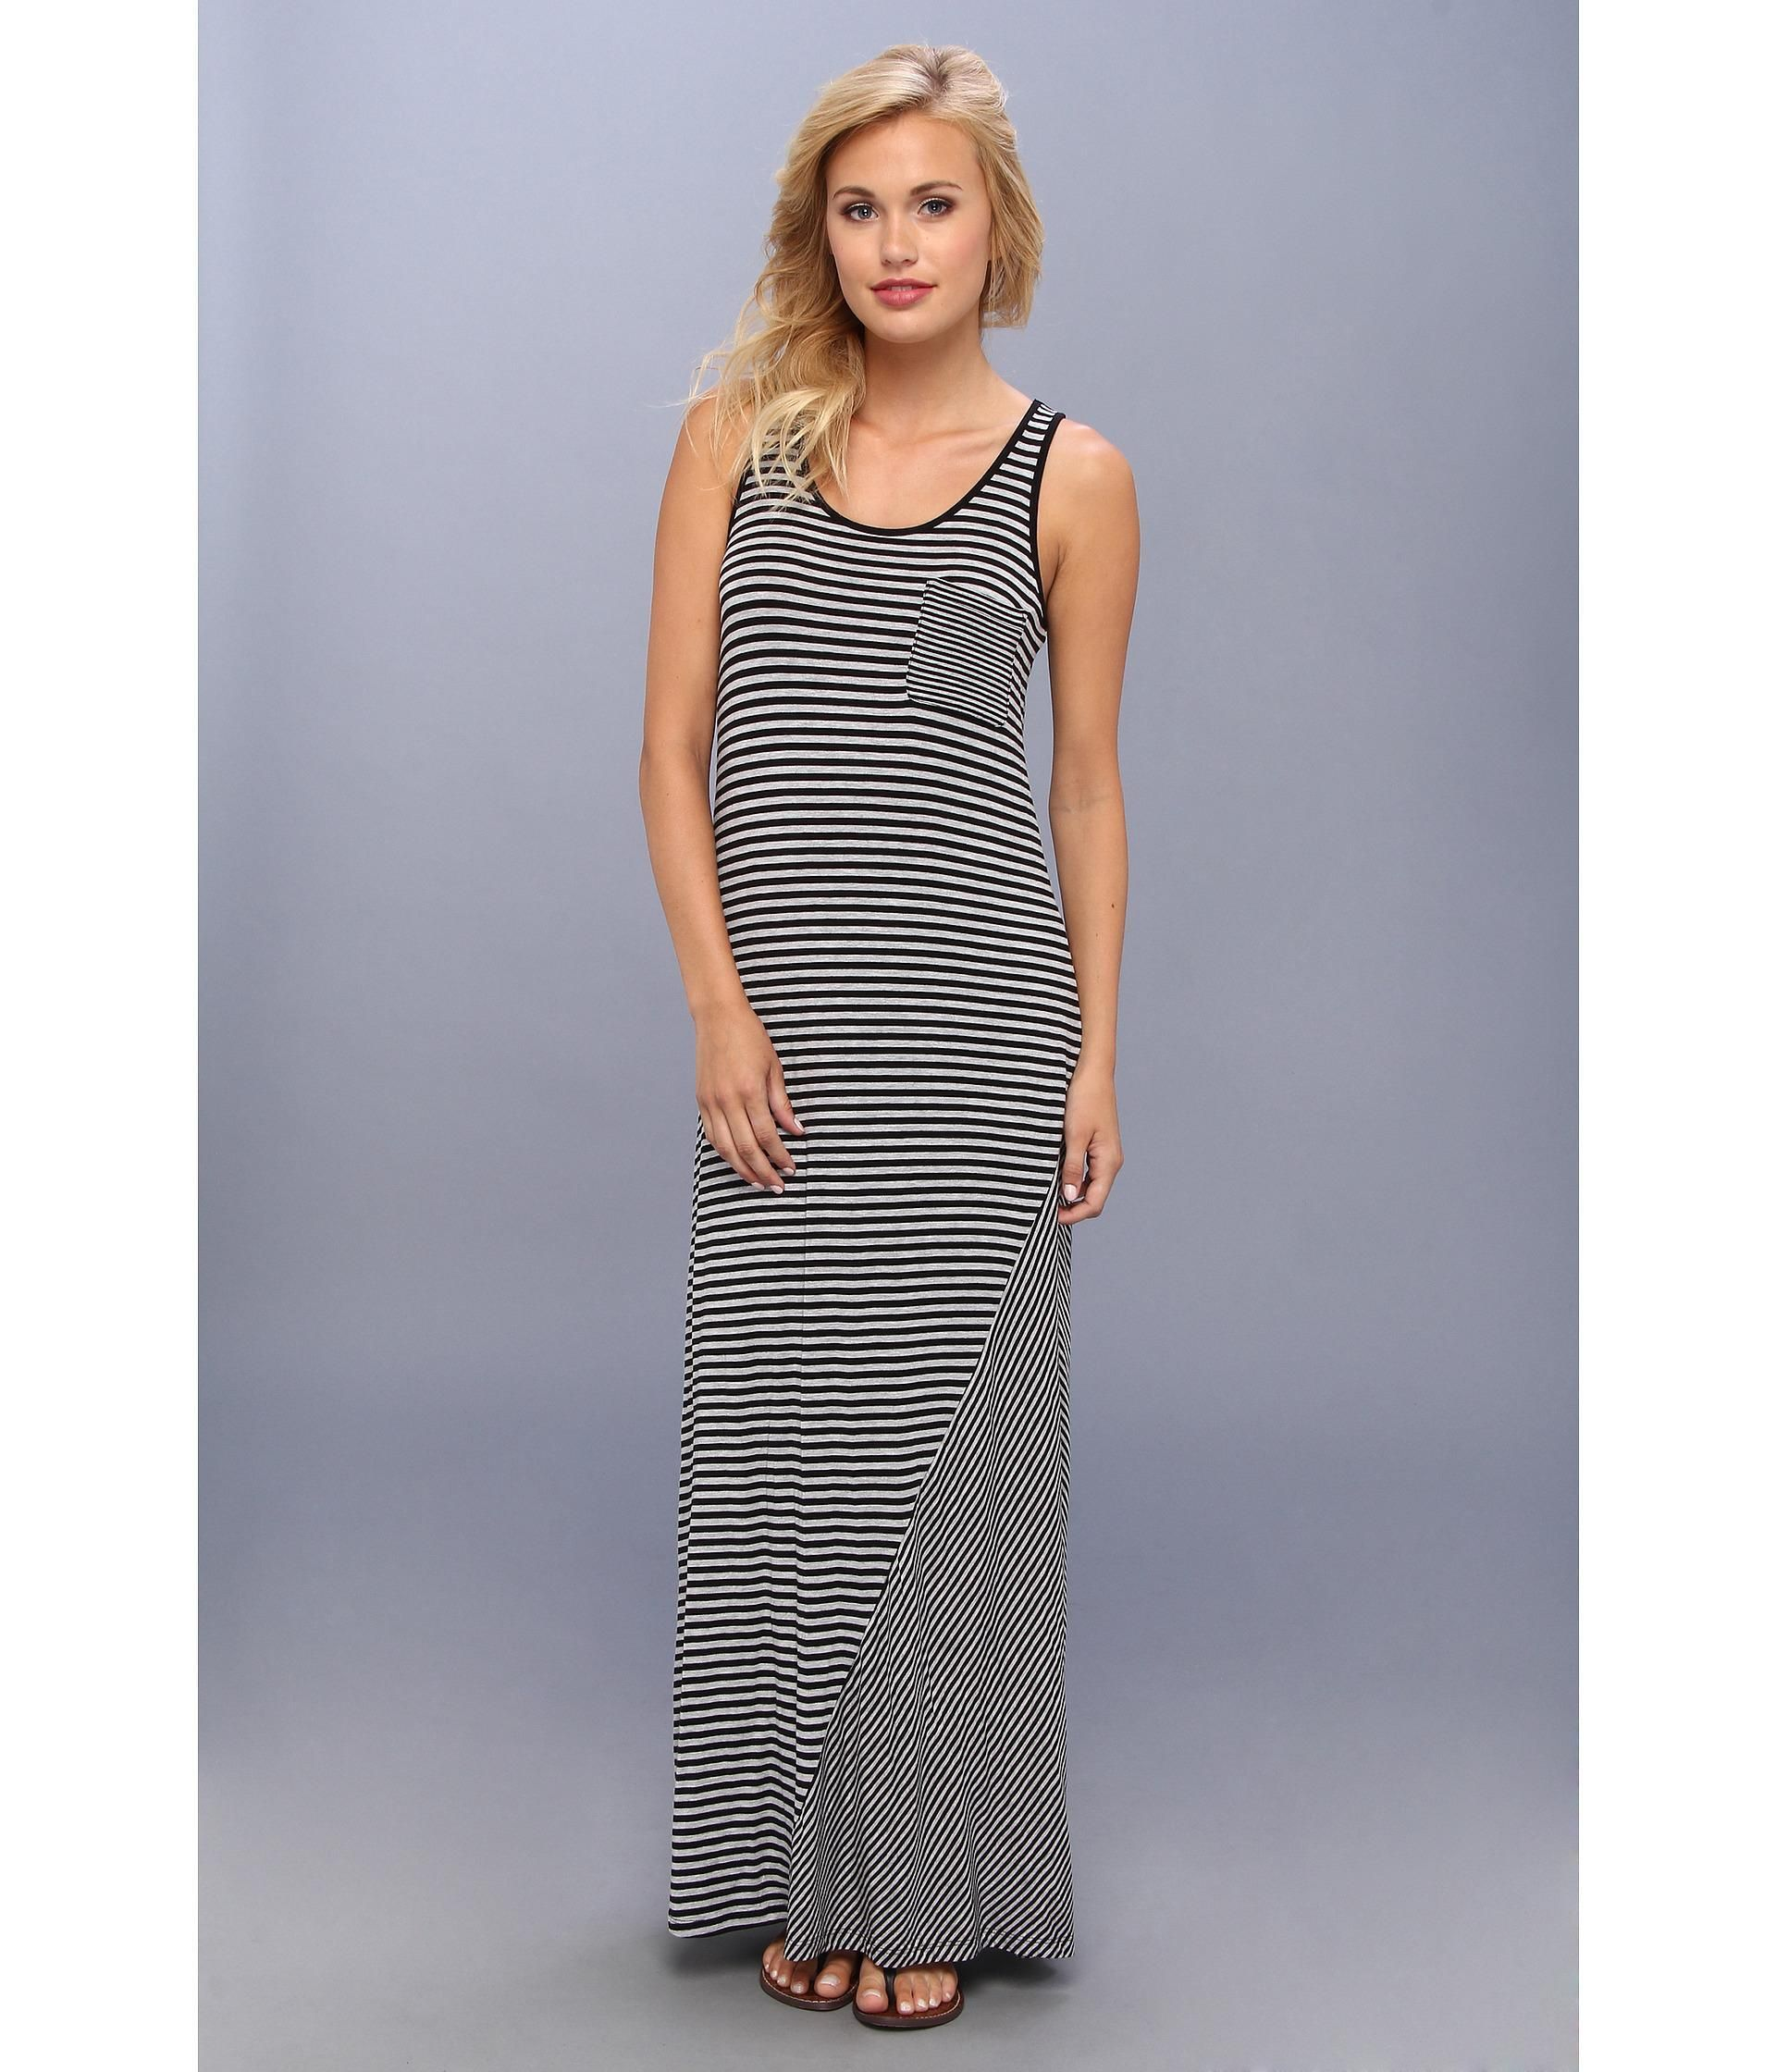 Step into summer with effortless ease in this kensie maxi dress